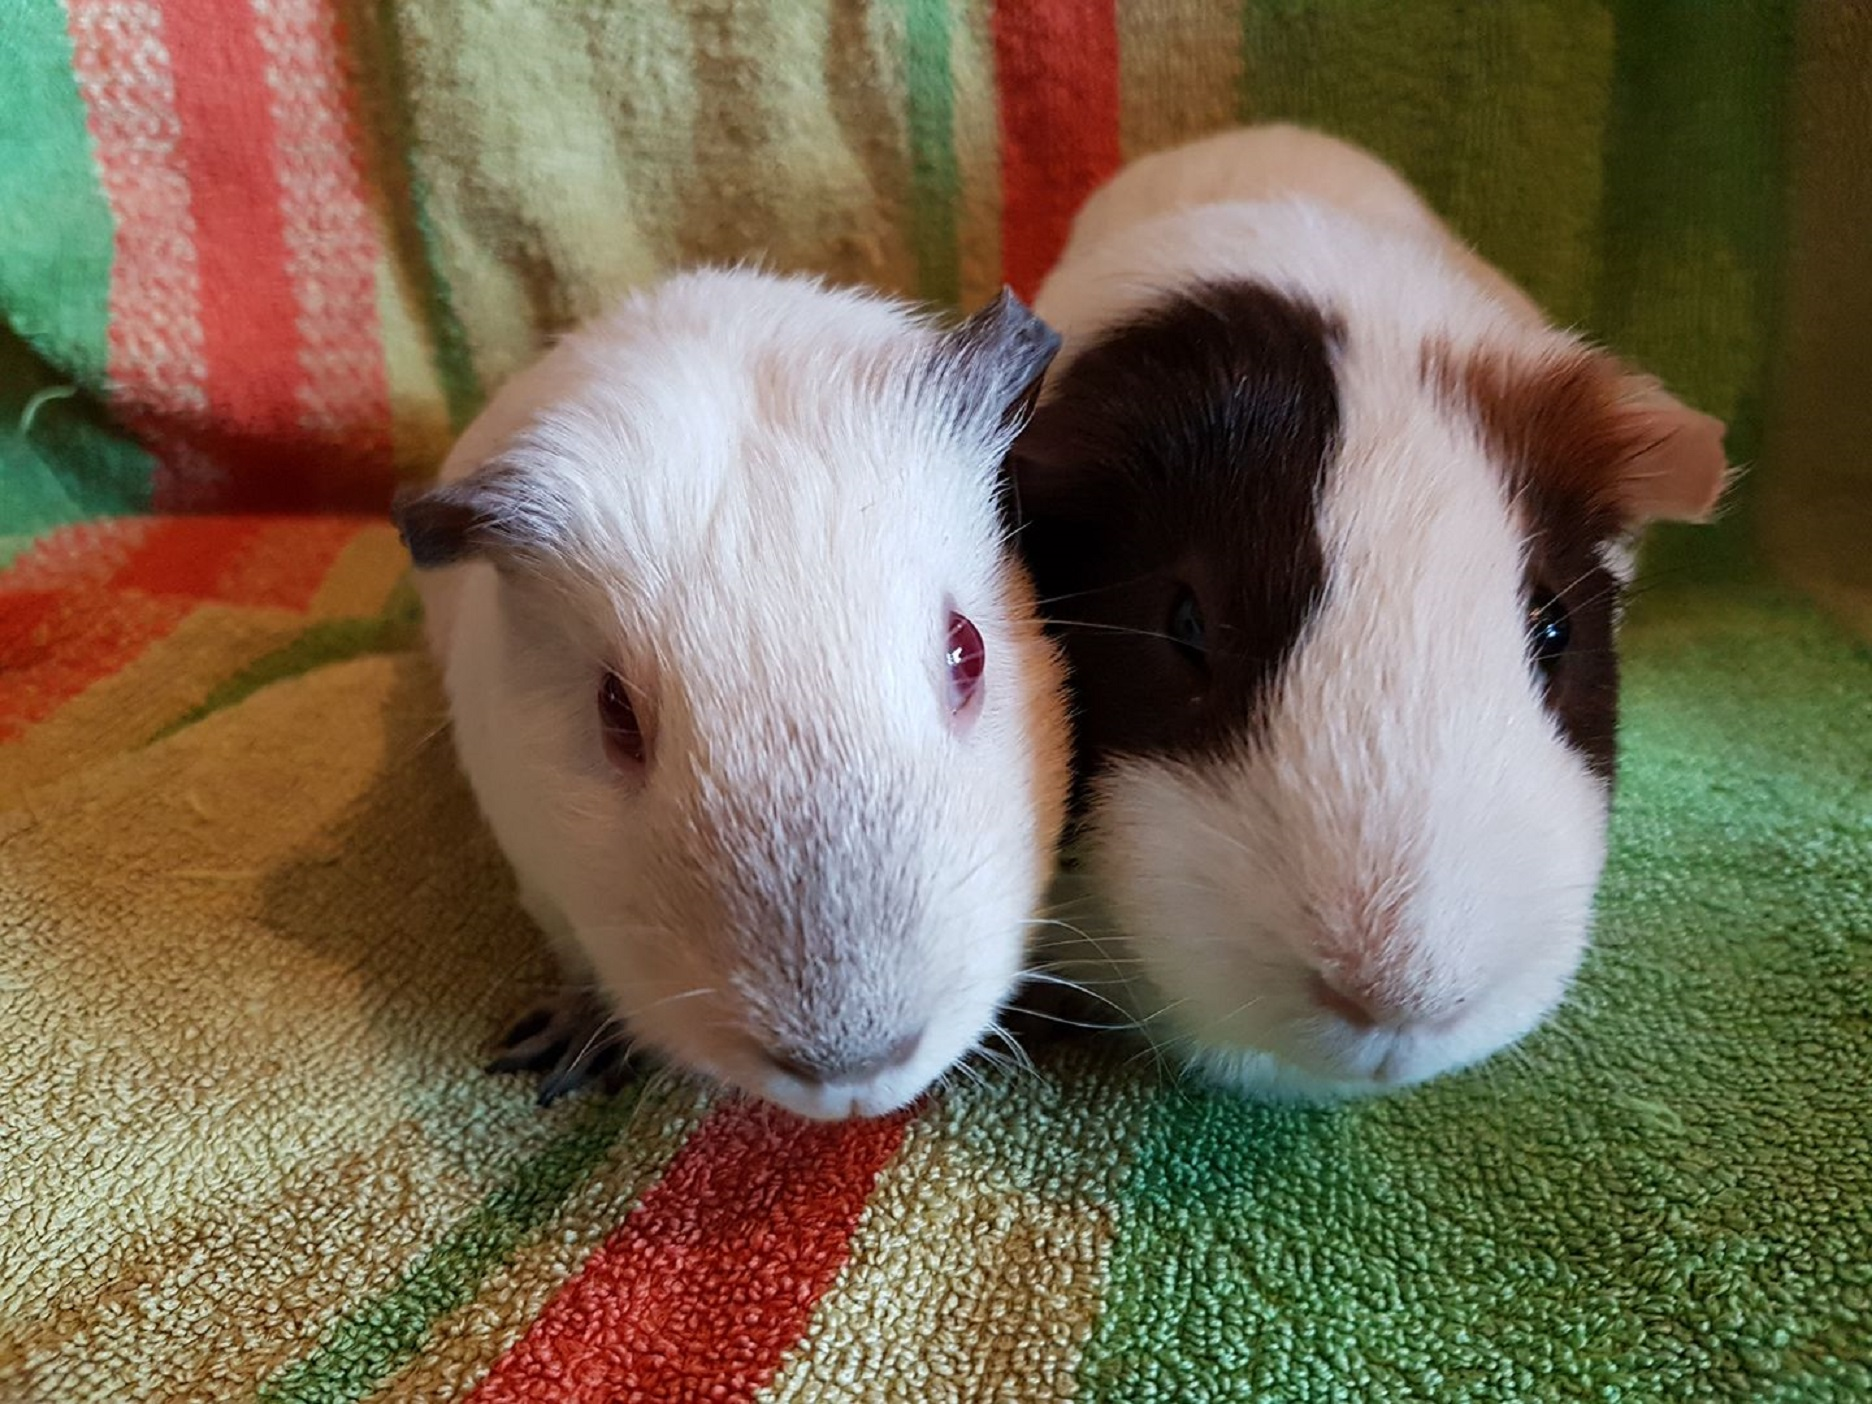 Pig & Chives (were Milly & Molly) March 5th 2018